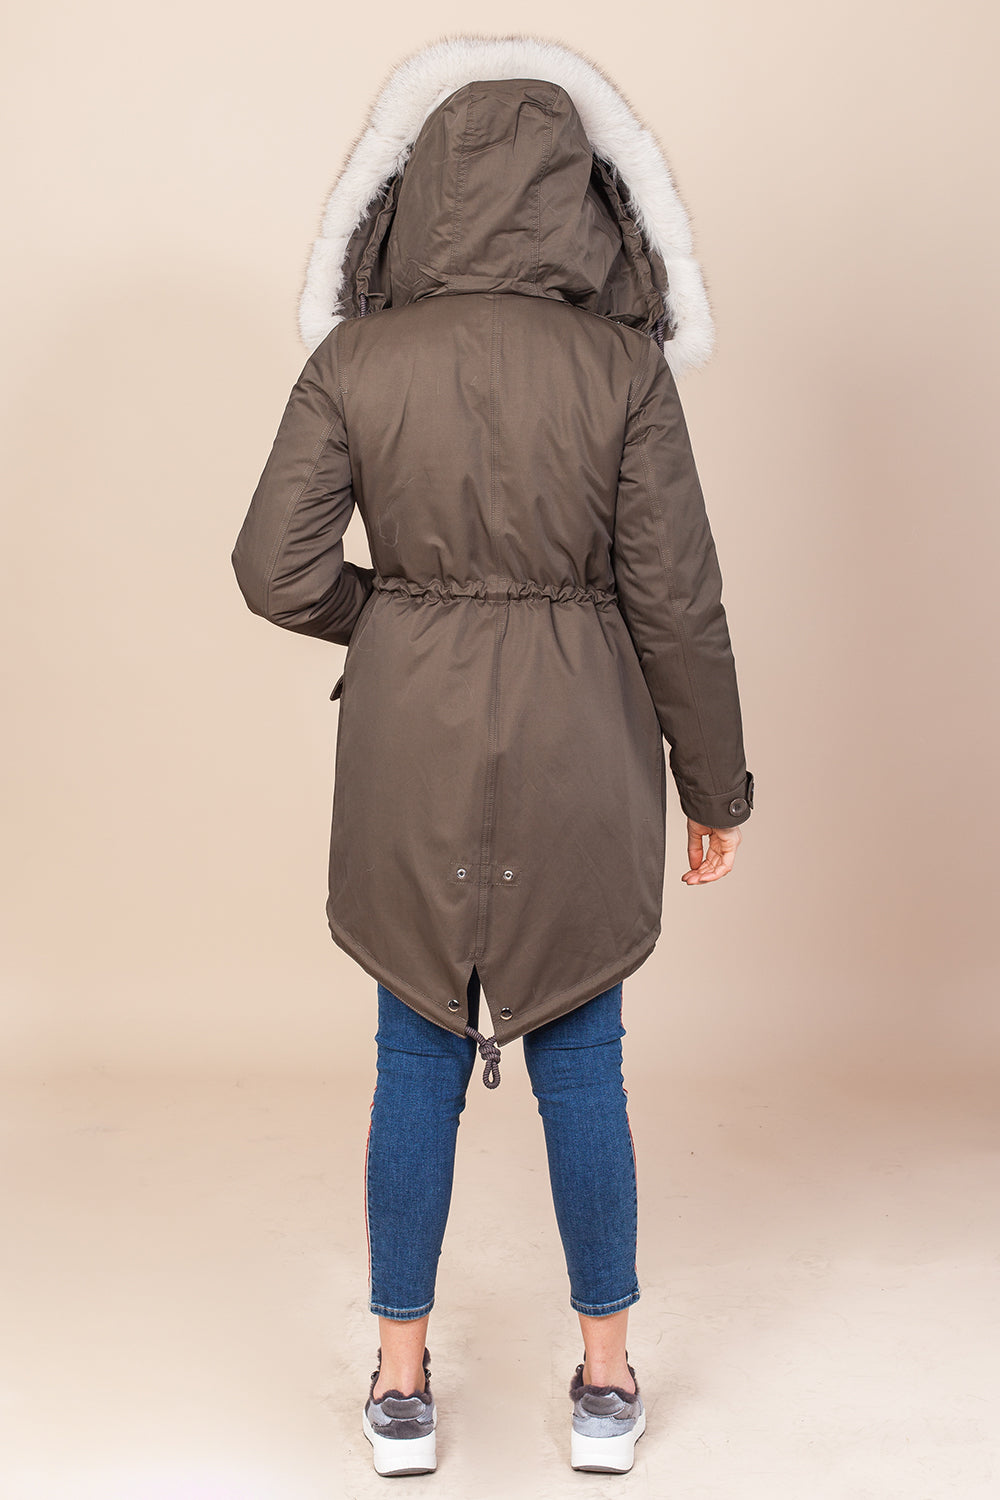 Khaki Midi Parka Main Fabric is Waterproof / Raincoat Fabric With Beige / Blue Fox